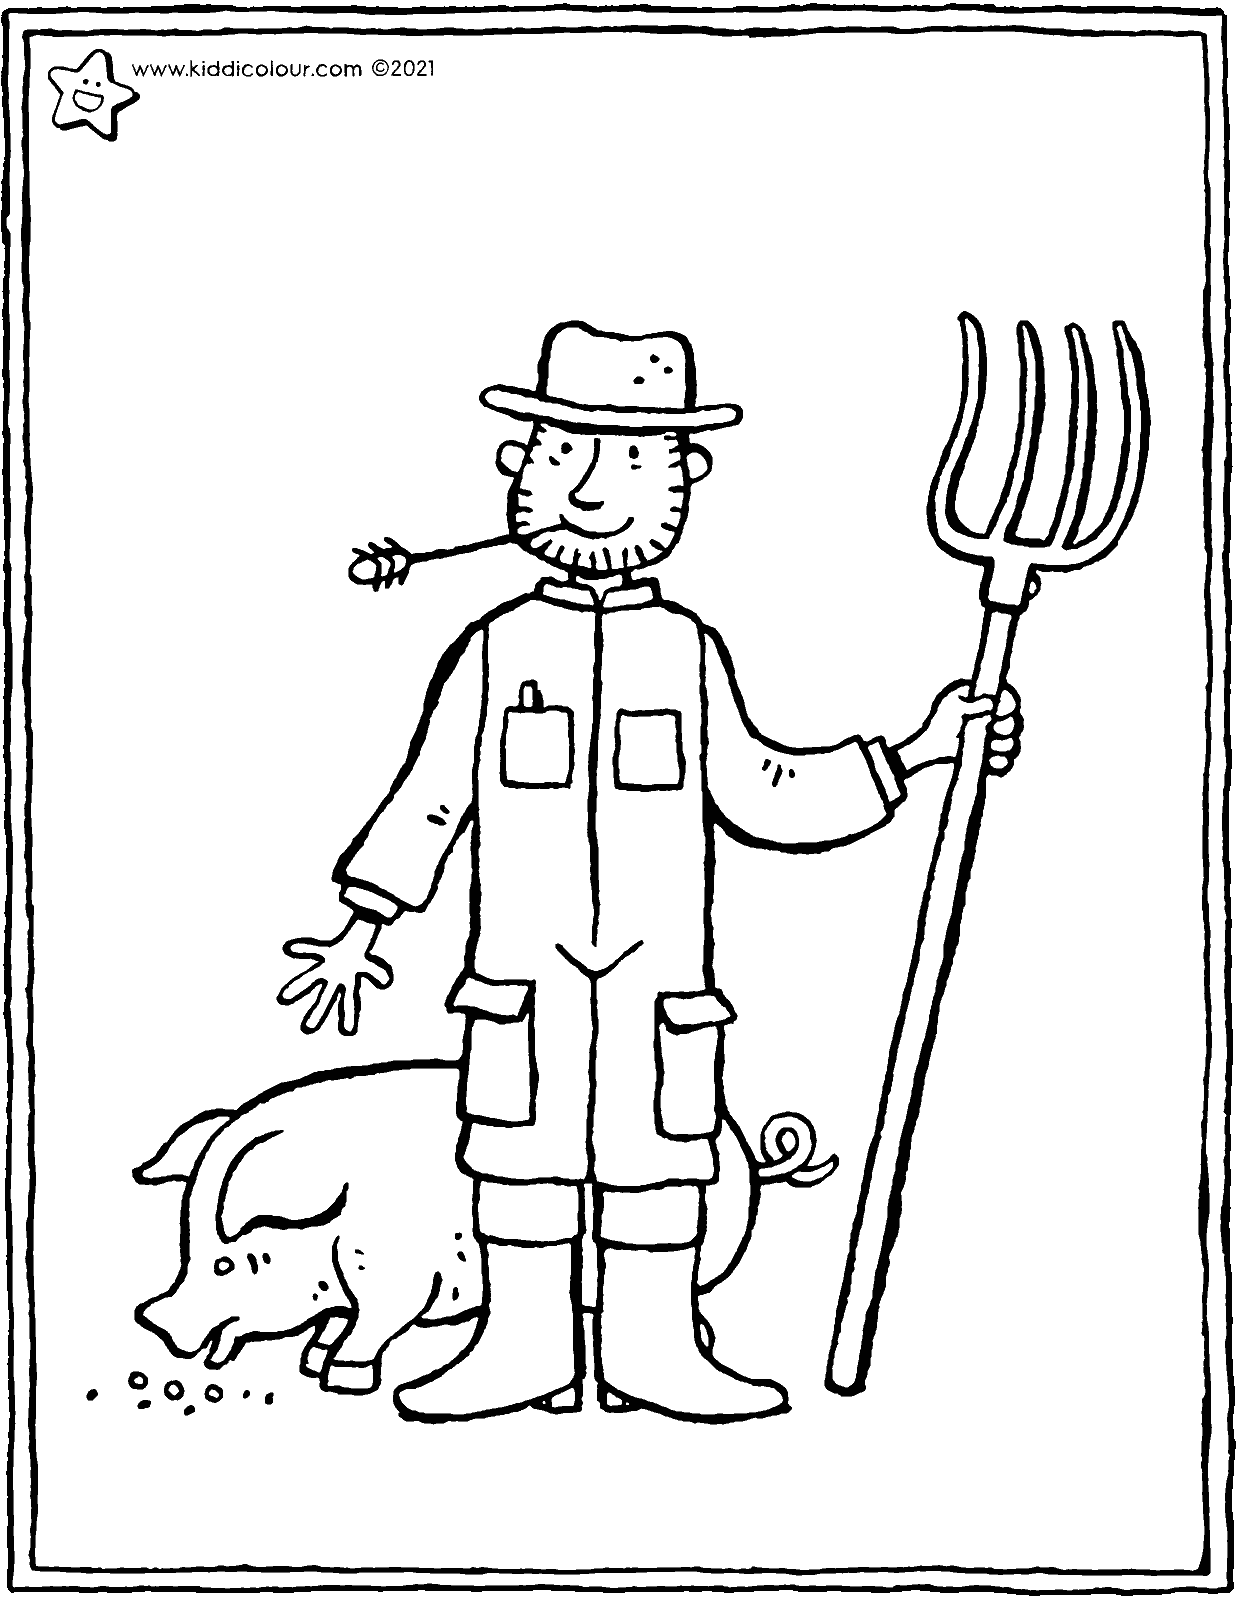 farmer colouring page drawing picture 01V